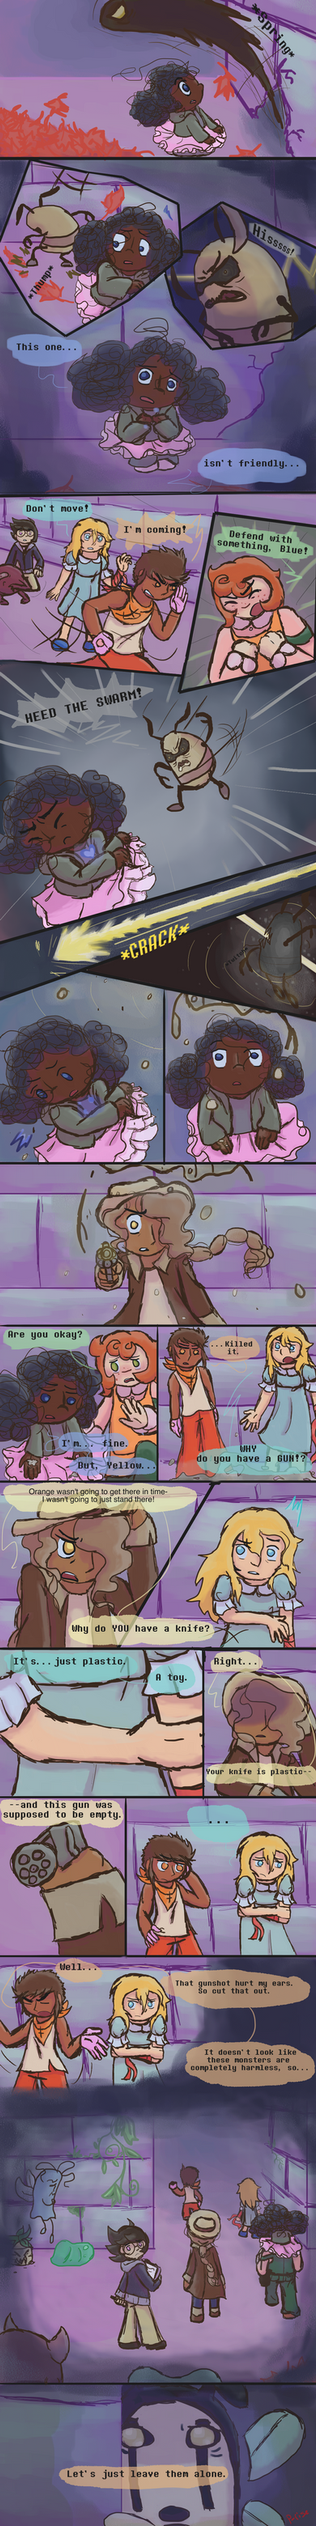 TSWFBY-page 6 by Passionrising